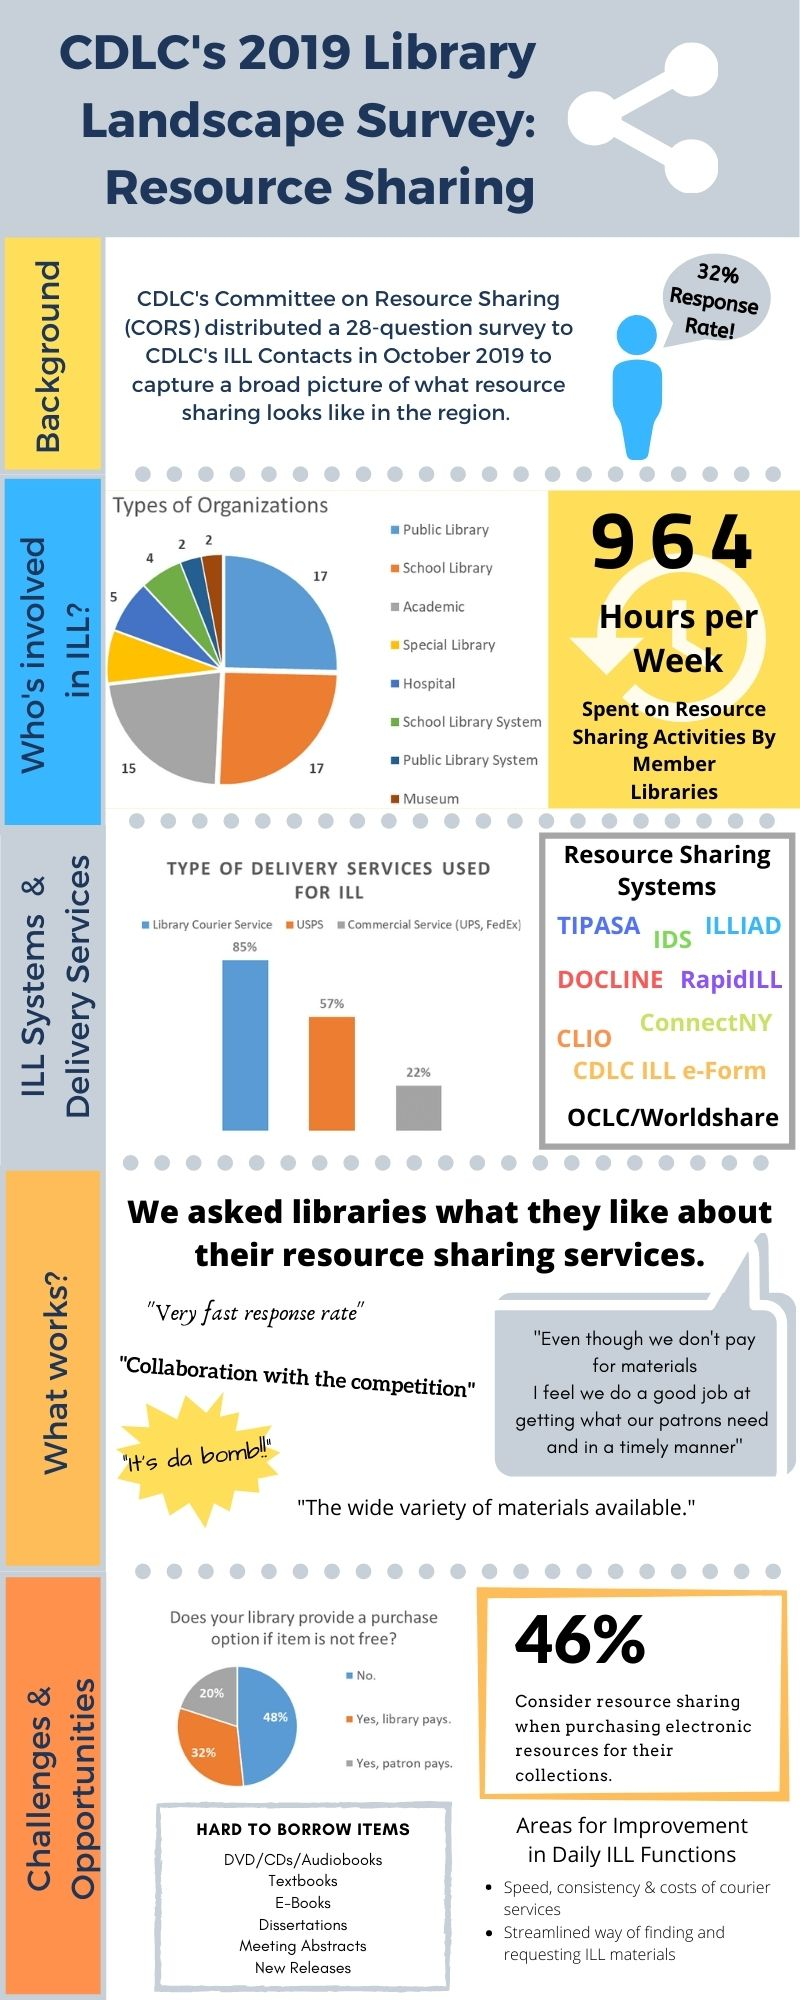 2019 Library Landscape Survey Responses Infographic on Resource Sharing